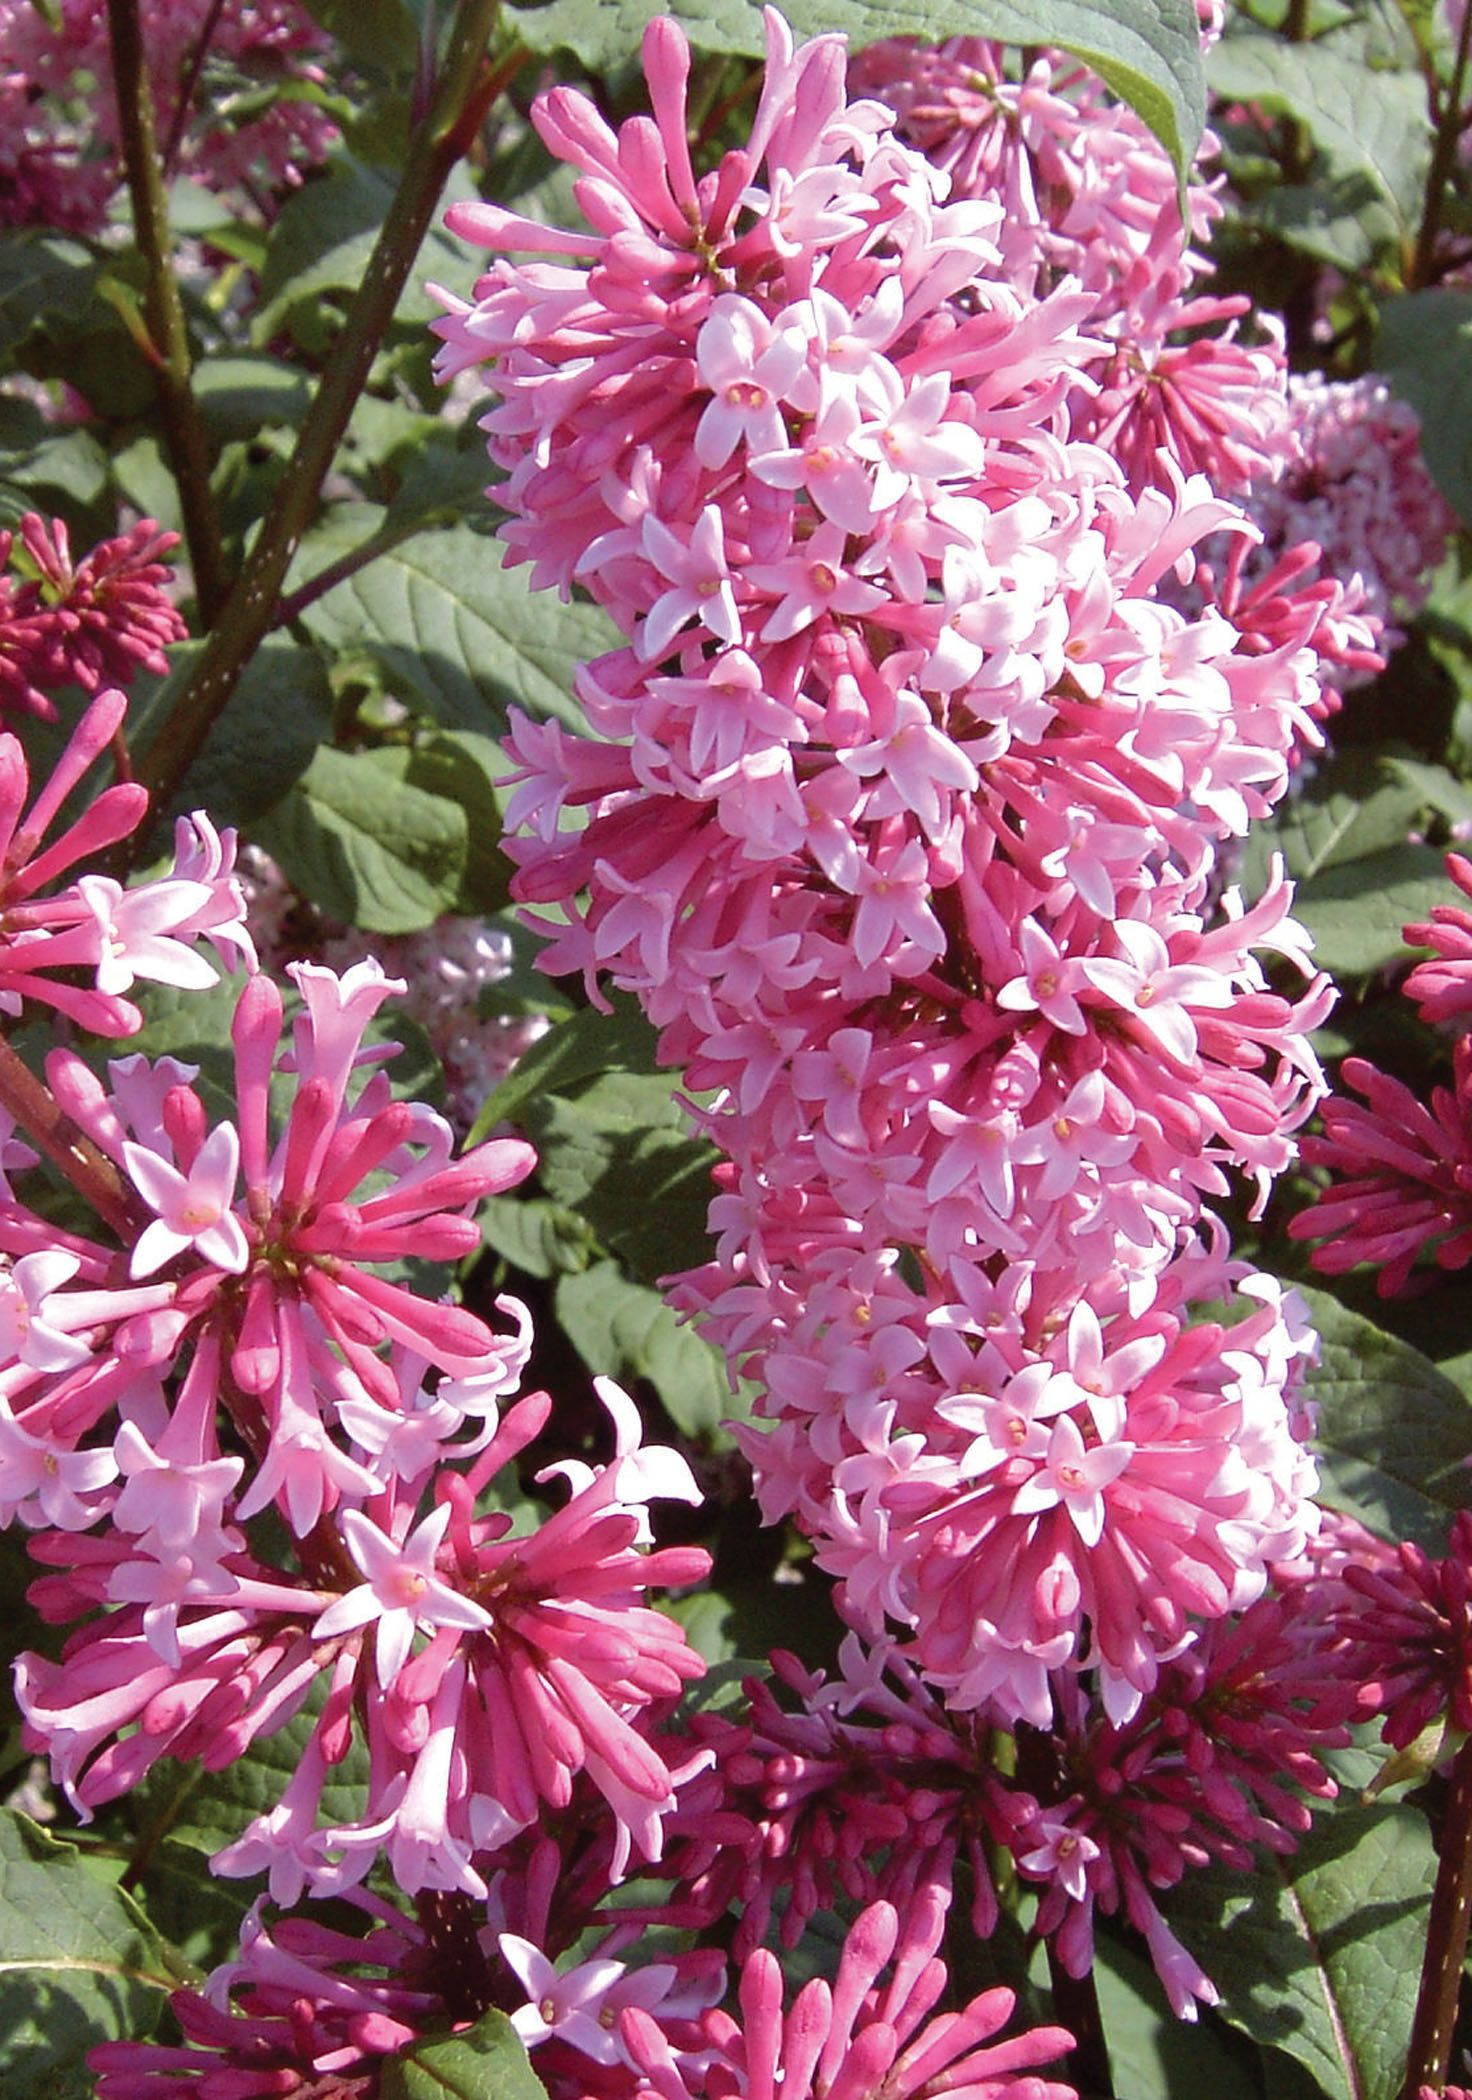 Miss Canada Lilac Has Large Clusters Of Tubular Deep Pink Flowers In Early Spring Flowering Trees Early Spring Flowers First Flowers Of Spring